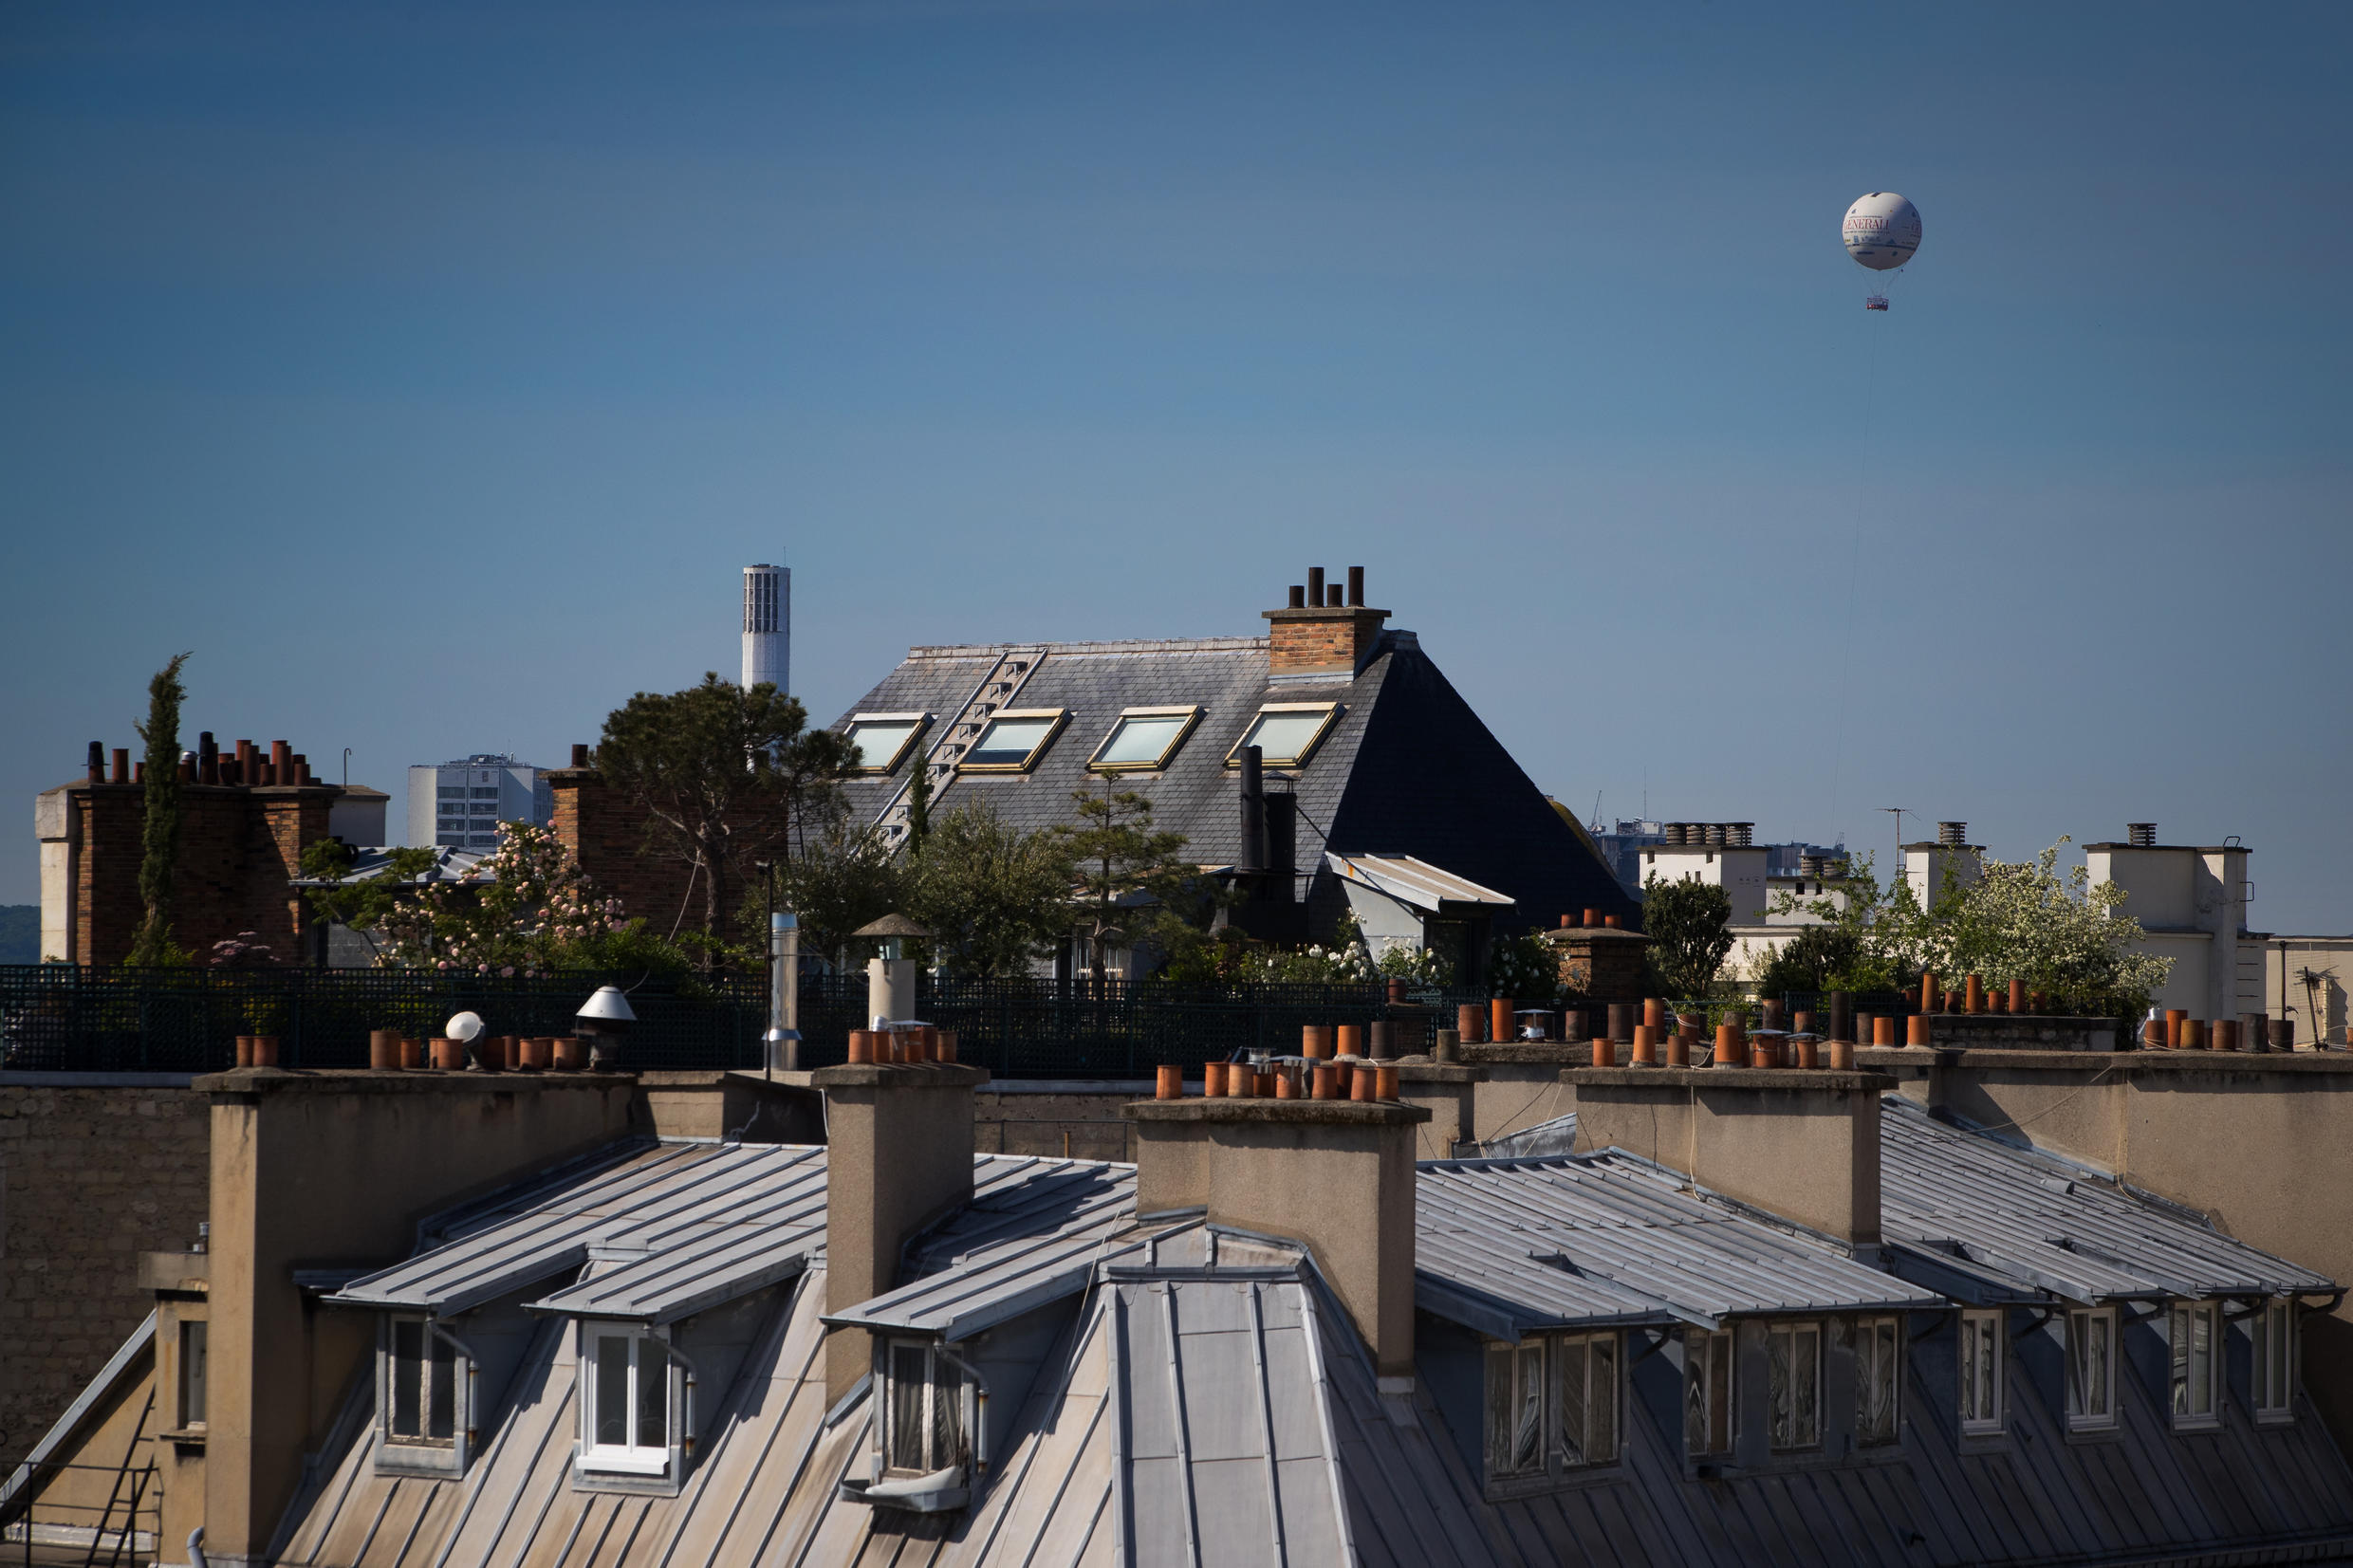 The weather balloon run by Airparif, the organisation responsible for monitoring the air quality in the greater Paris area, flies over the French capital on May 7, 2020, during France's first Covid-19 lockdown.